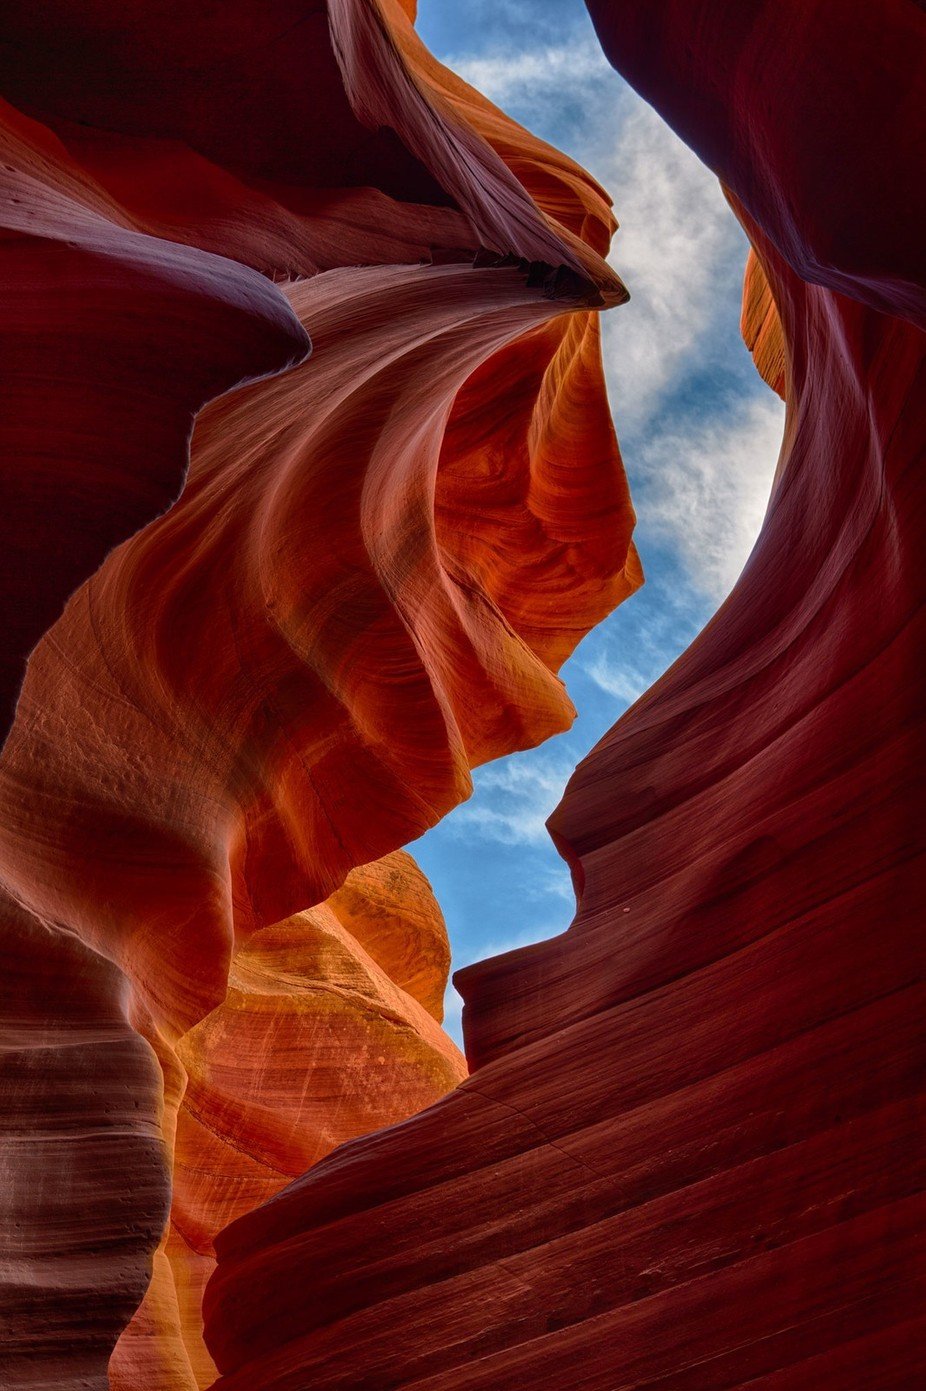 Antelope-Canyon by Globetrottingturk - Monthly Pro Vol 17 Photo Contest